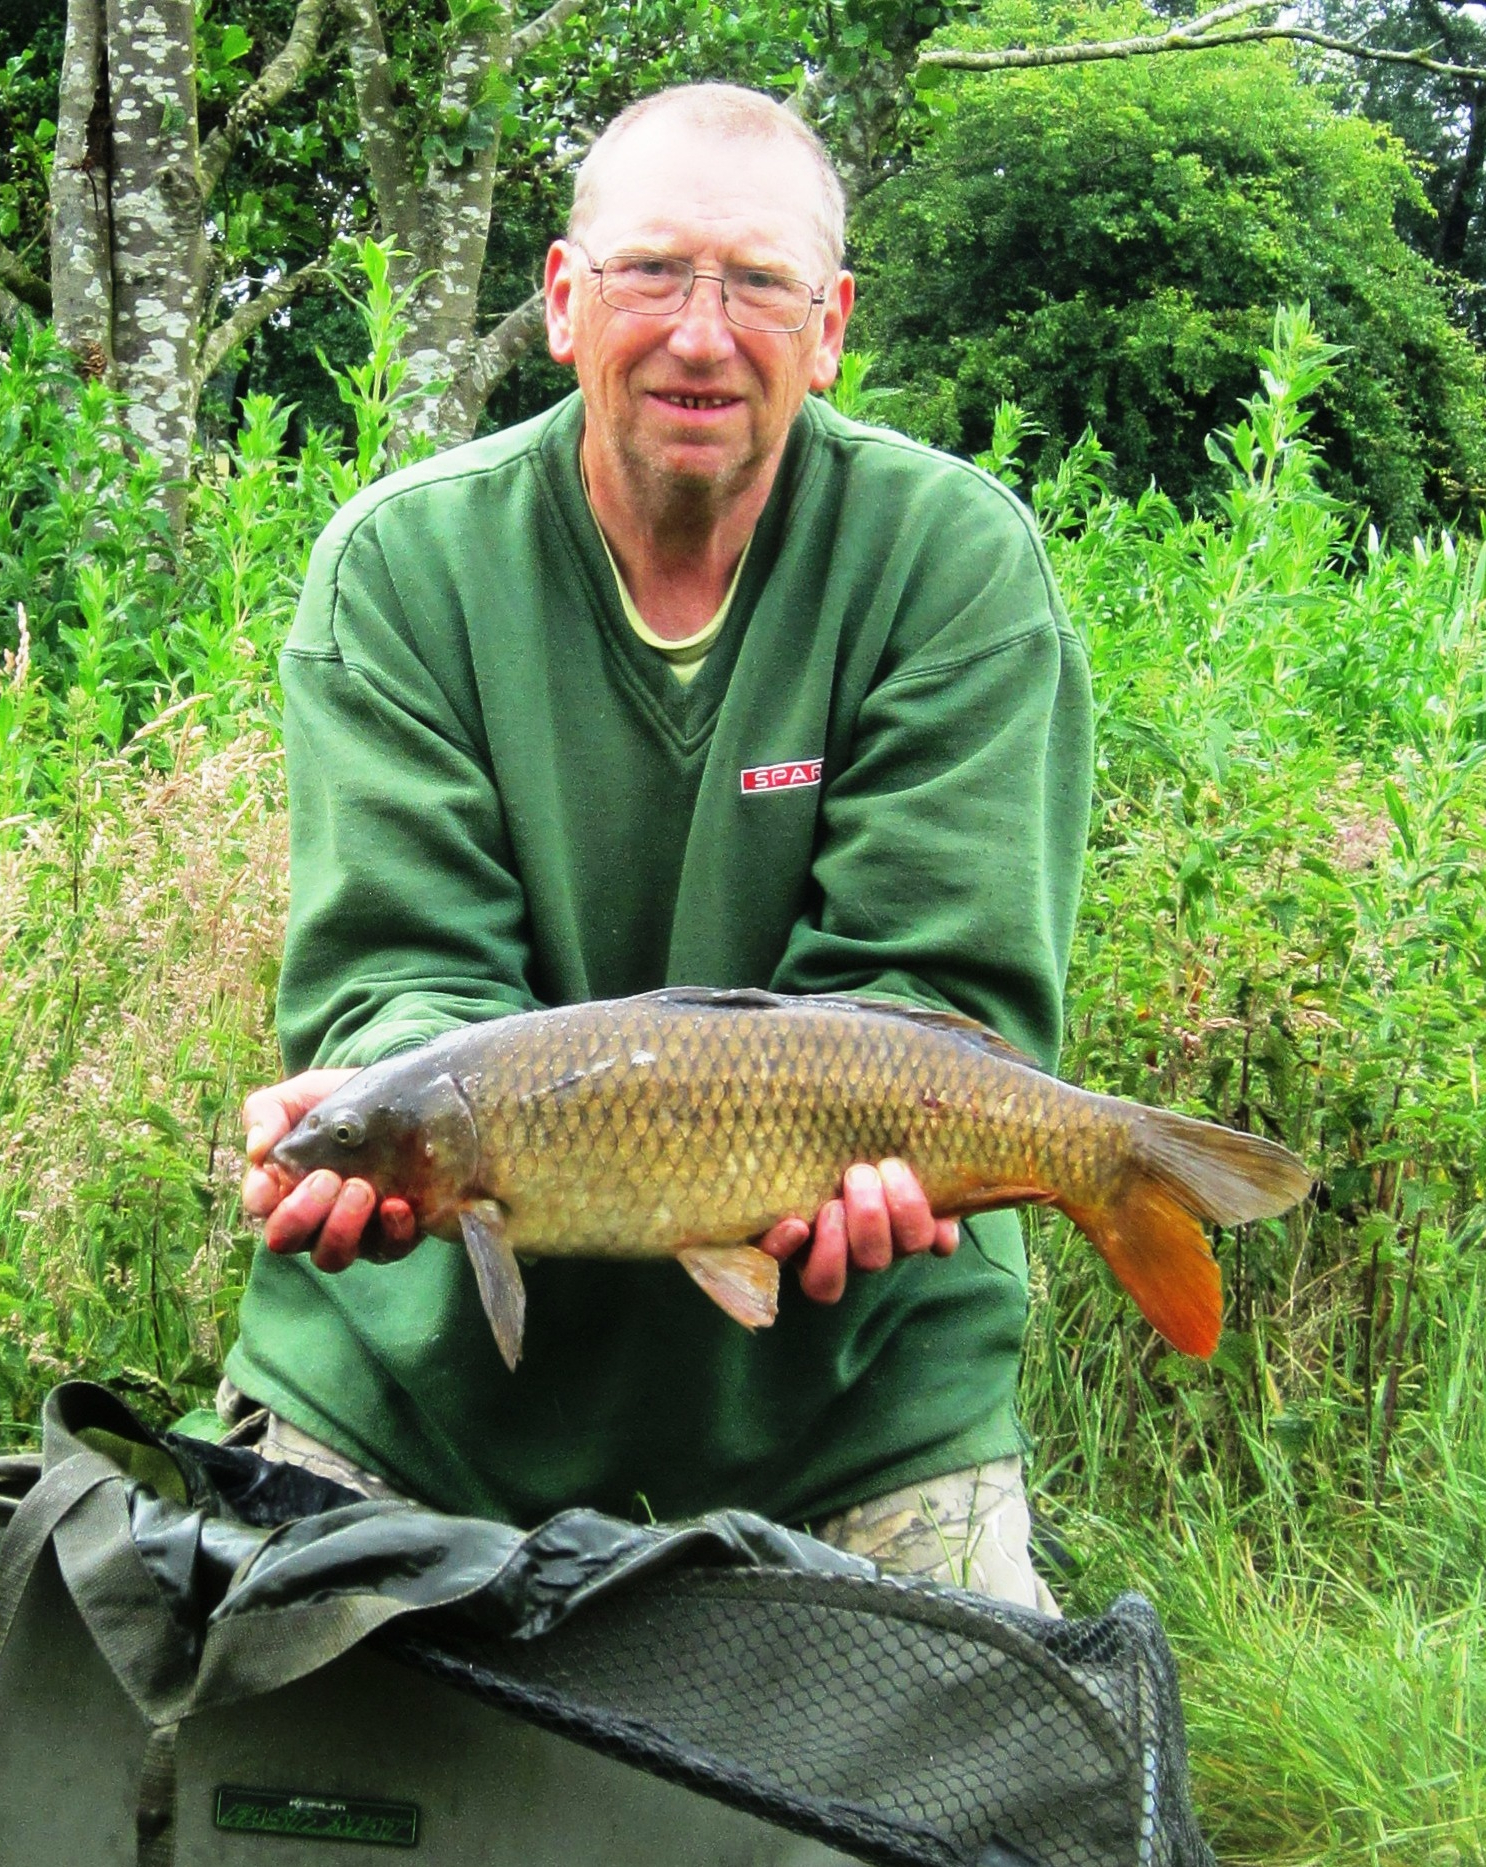 2020-06-19 Steve - Common Carp 5lb 7oz